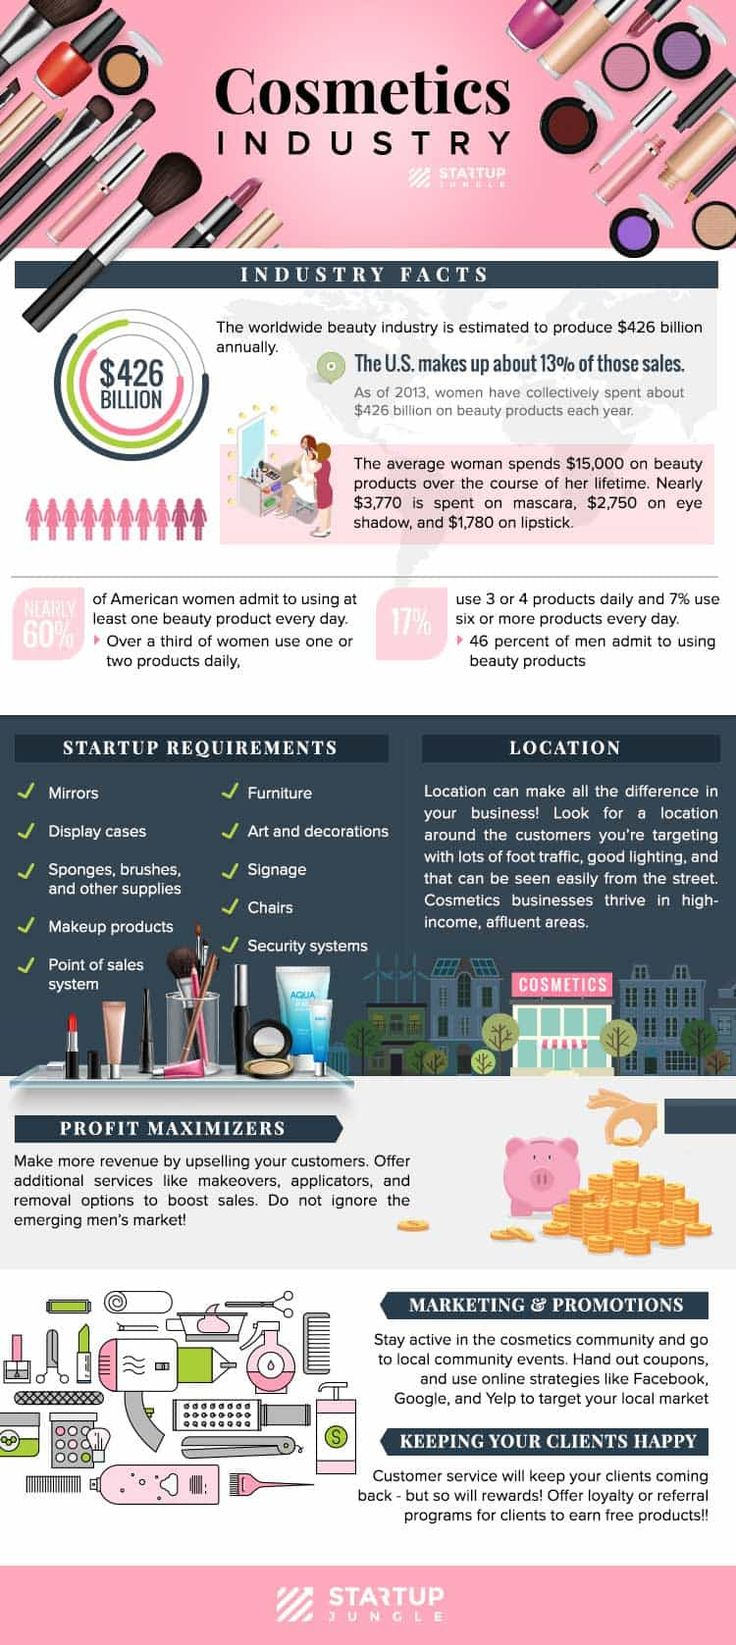 How to Start your own Cosmetics Business Cosmetic